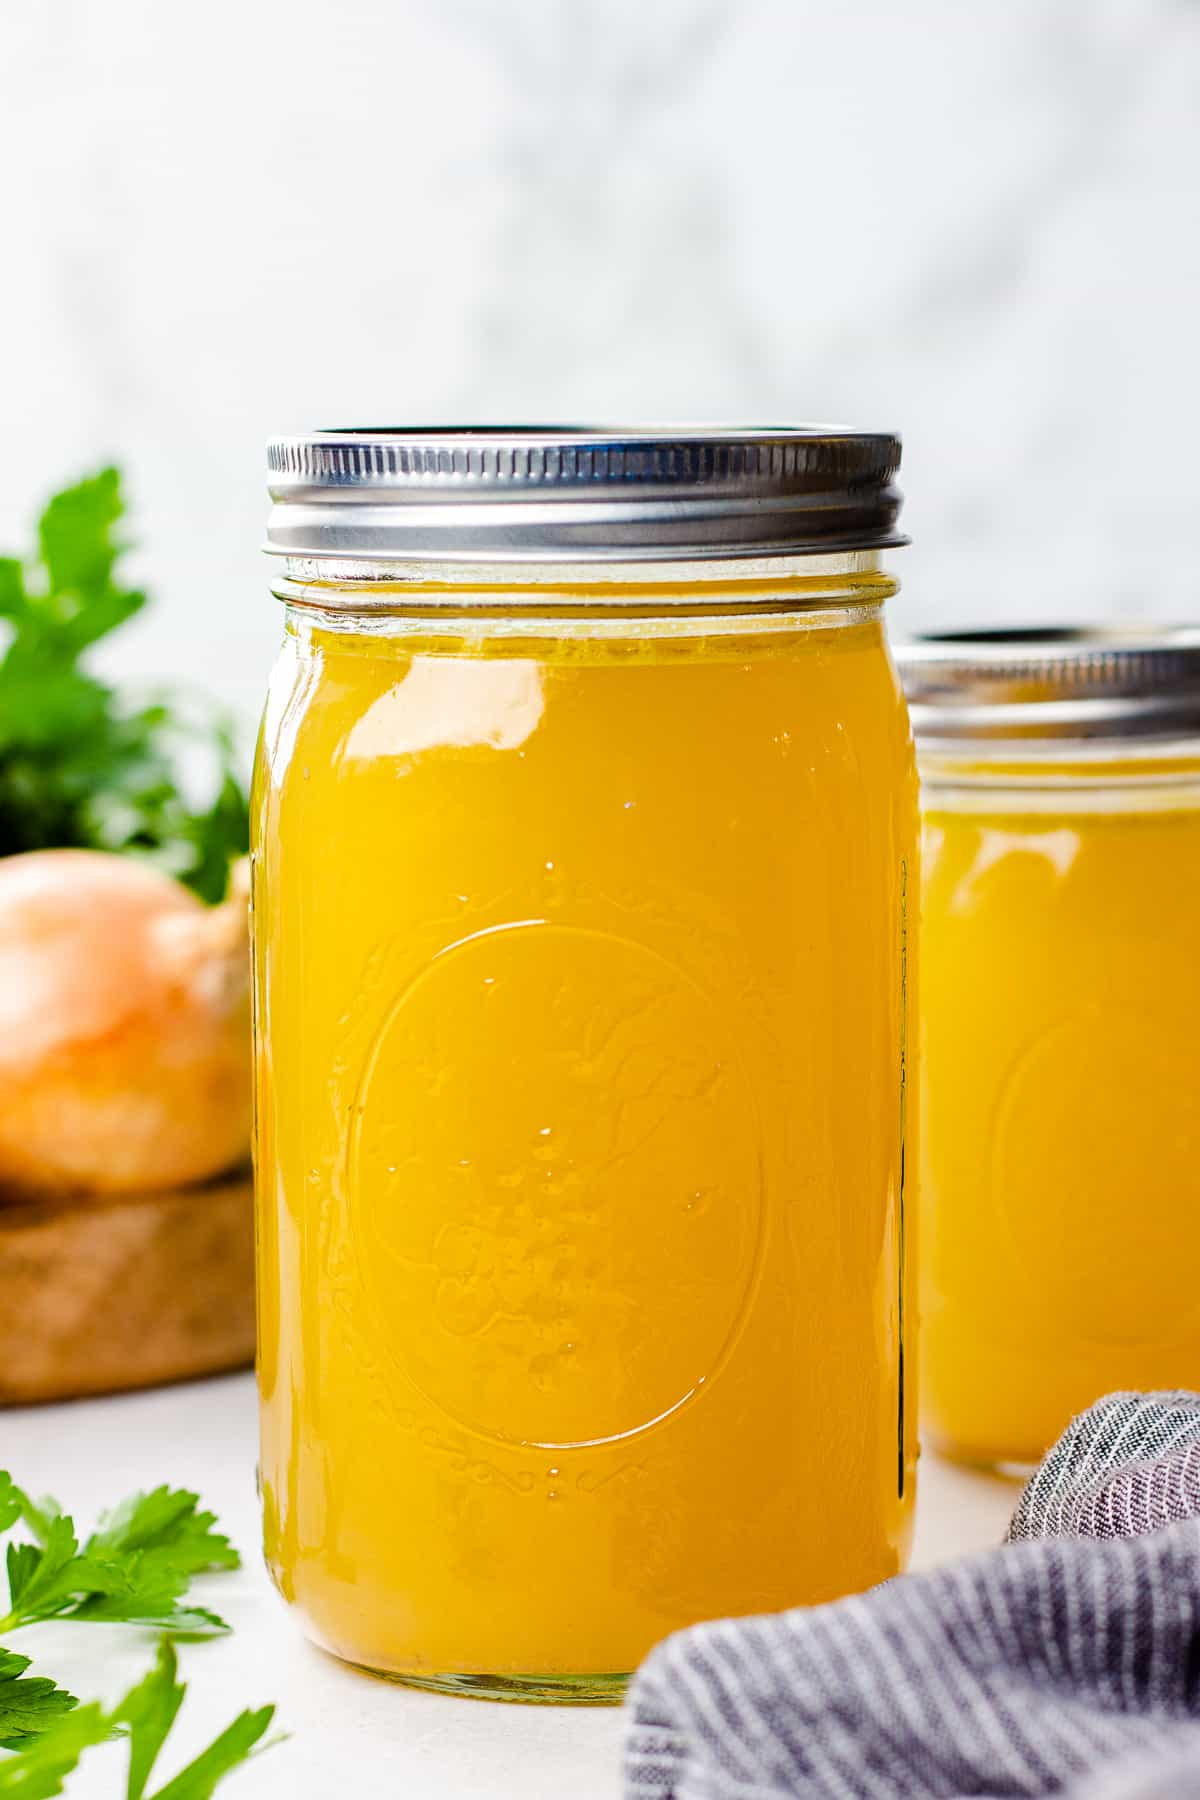 Homemade Chicken Stock in Mason jars.